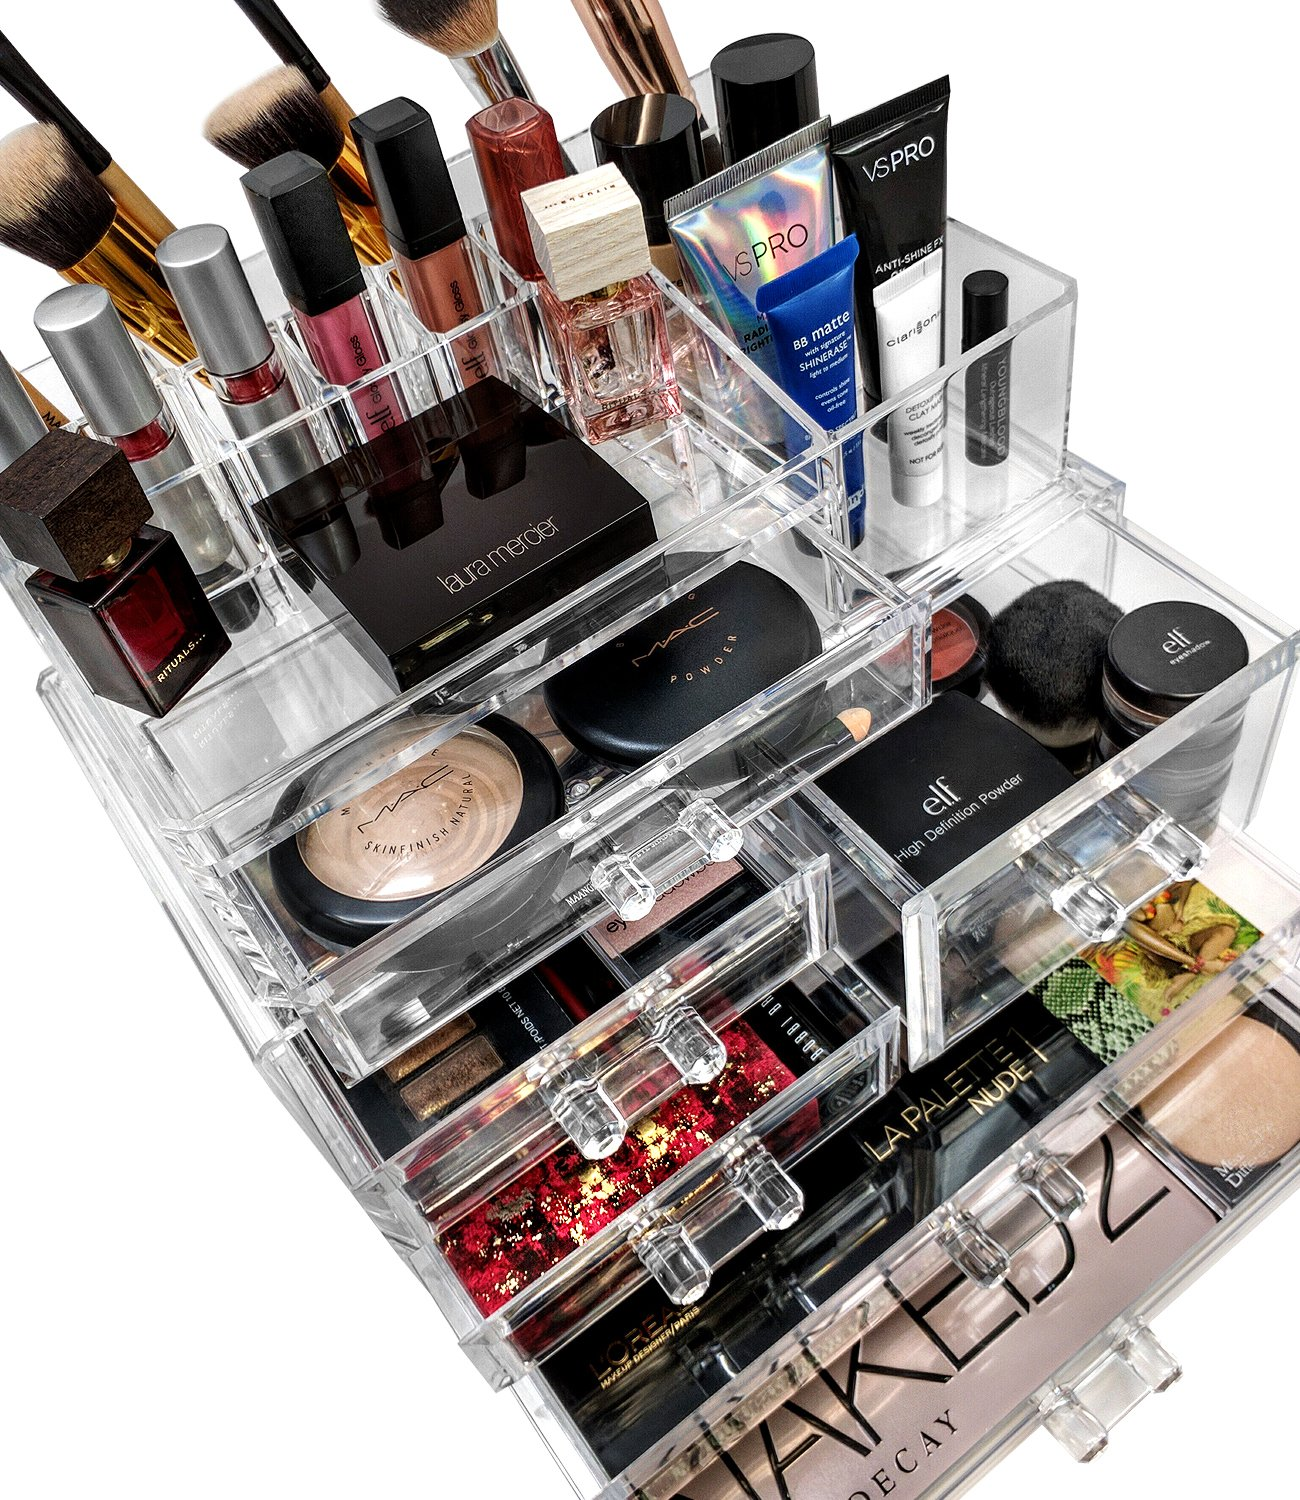 Amazon.com: Sorbus Acrylic Cosmetics Makeup And Jewelry Storage Case  Display Sets  Interlocking Drawers To Create Your Own Specially Designed  Makeup Counter ...